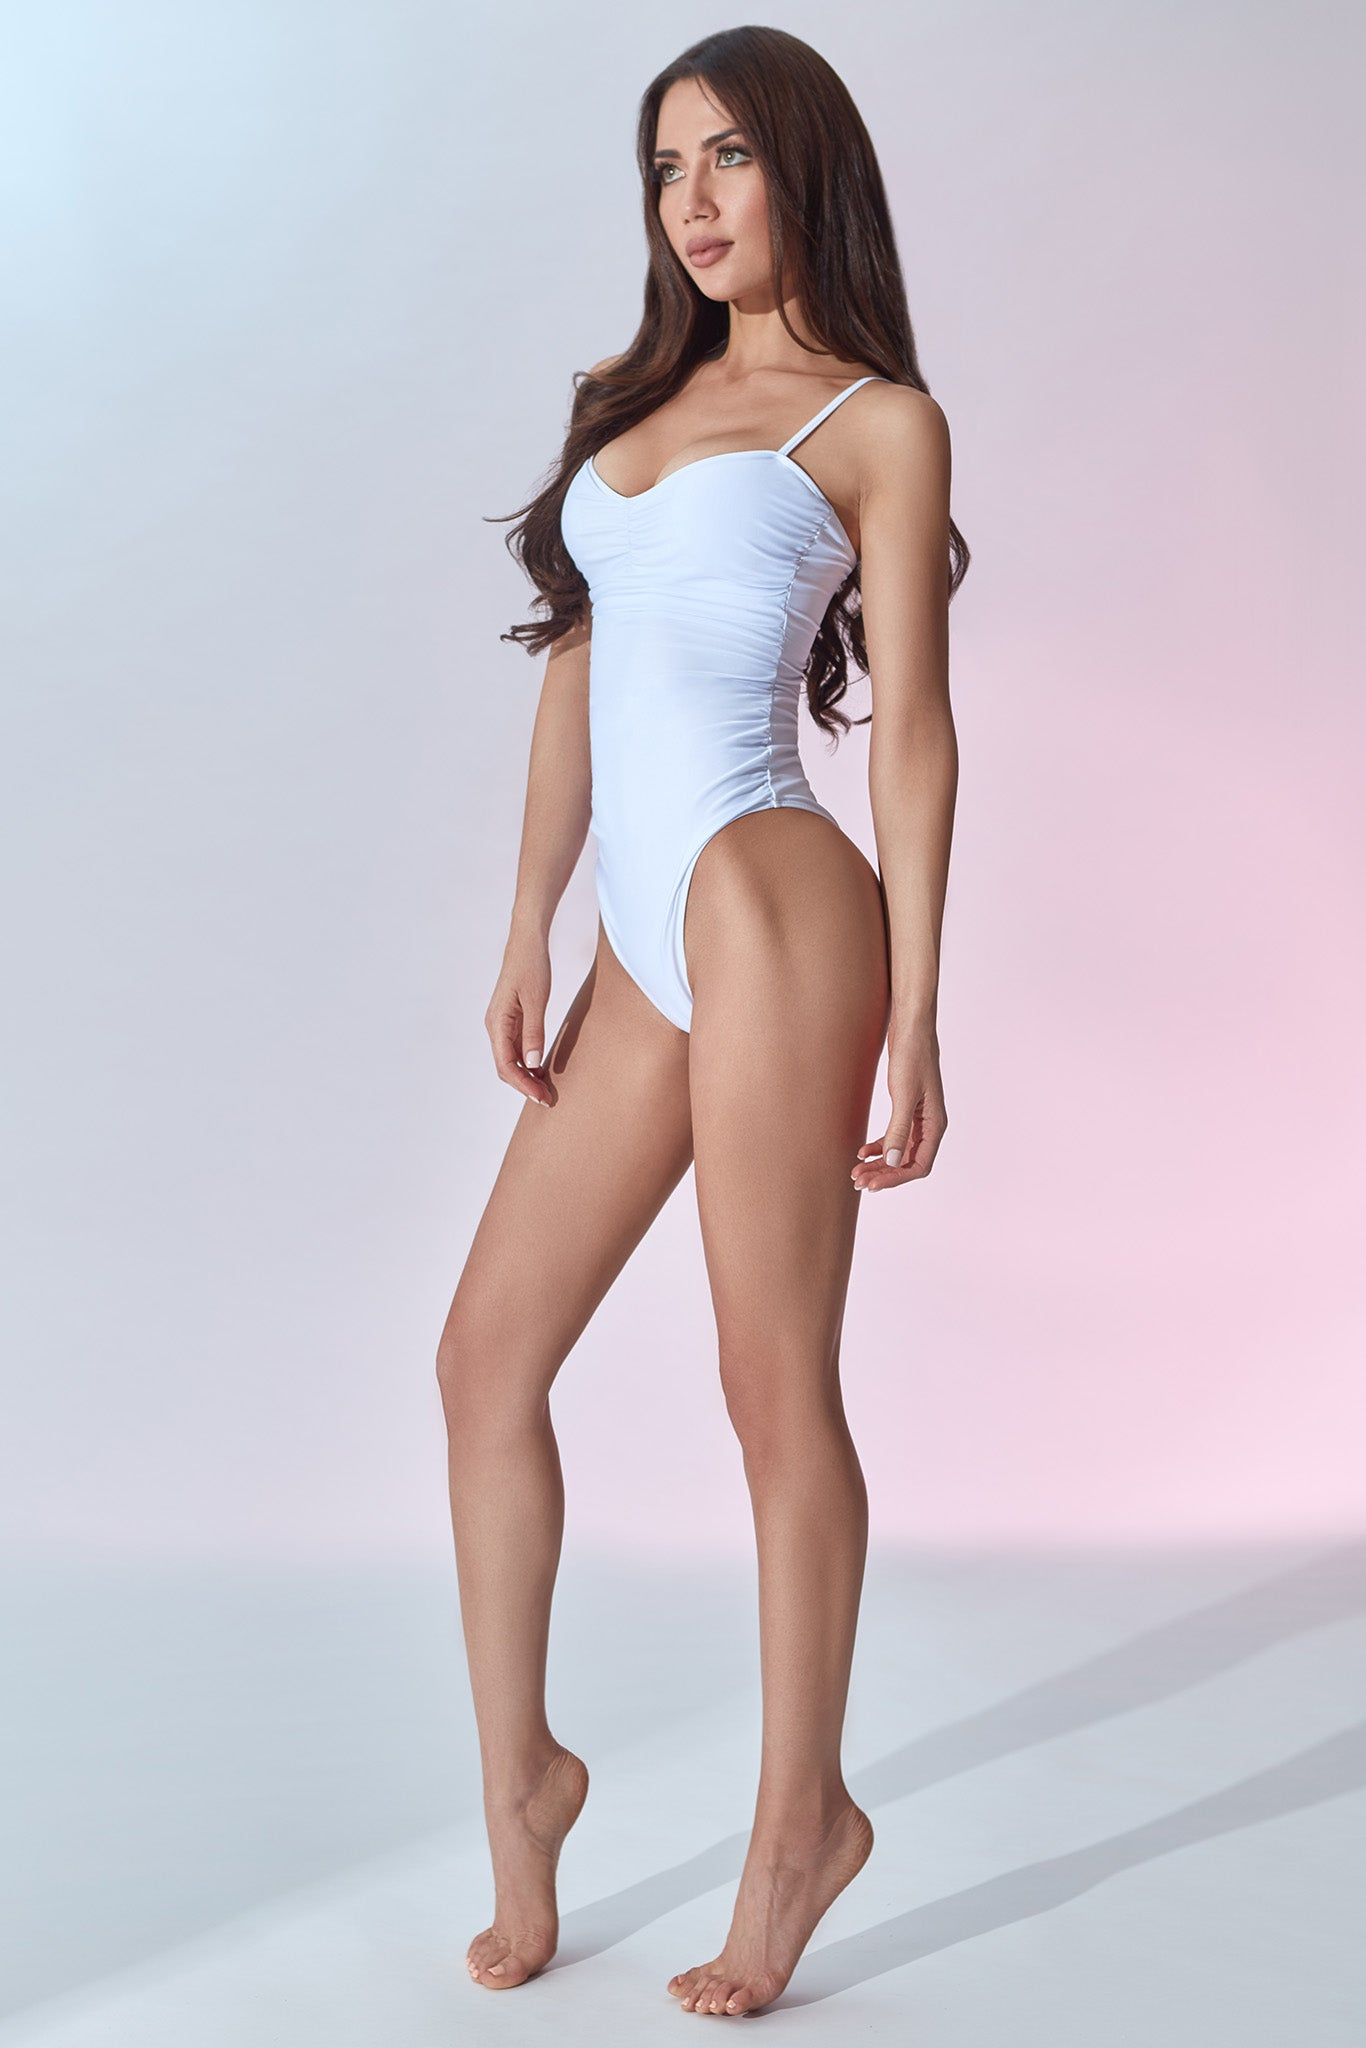 Fontainebleau Swimsuit - White - Side